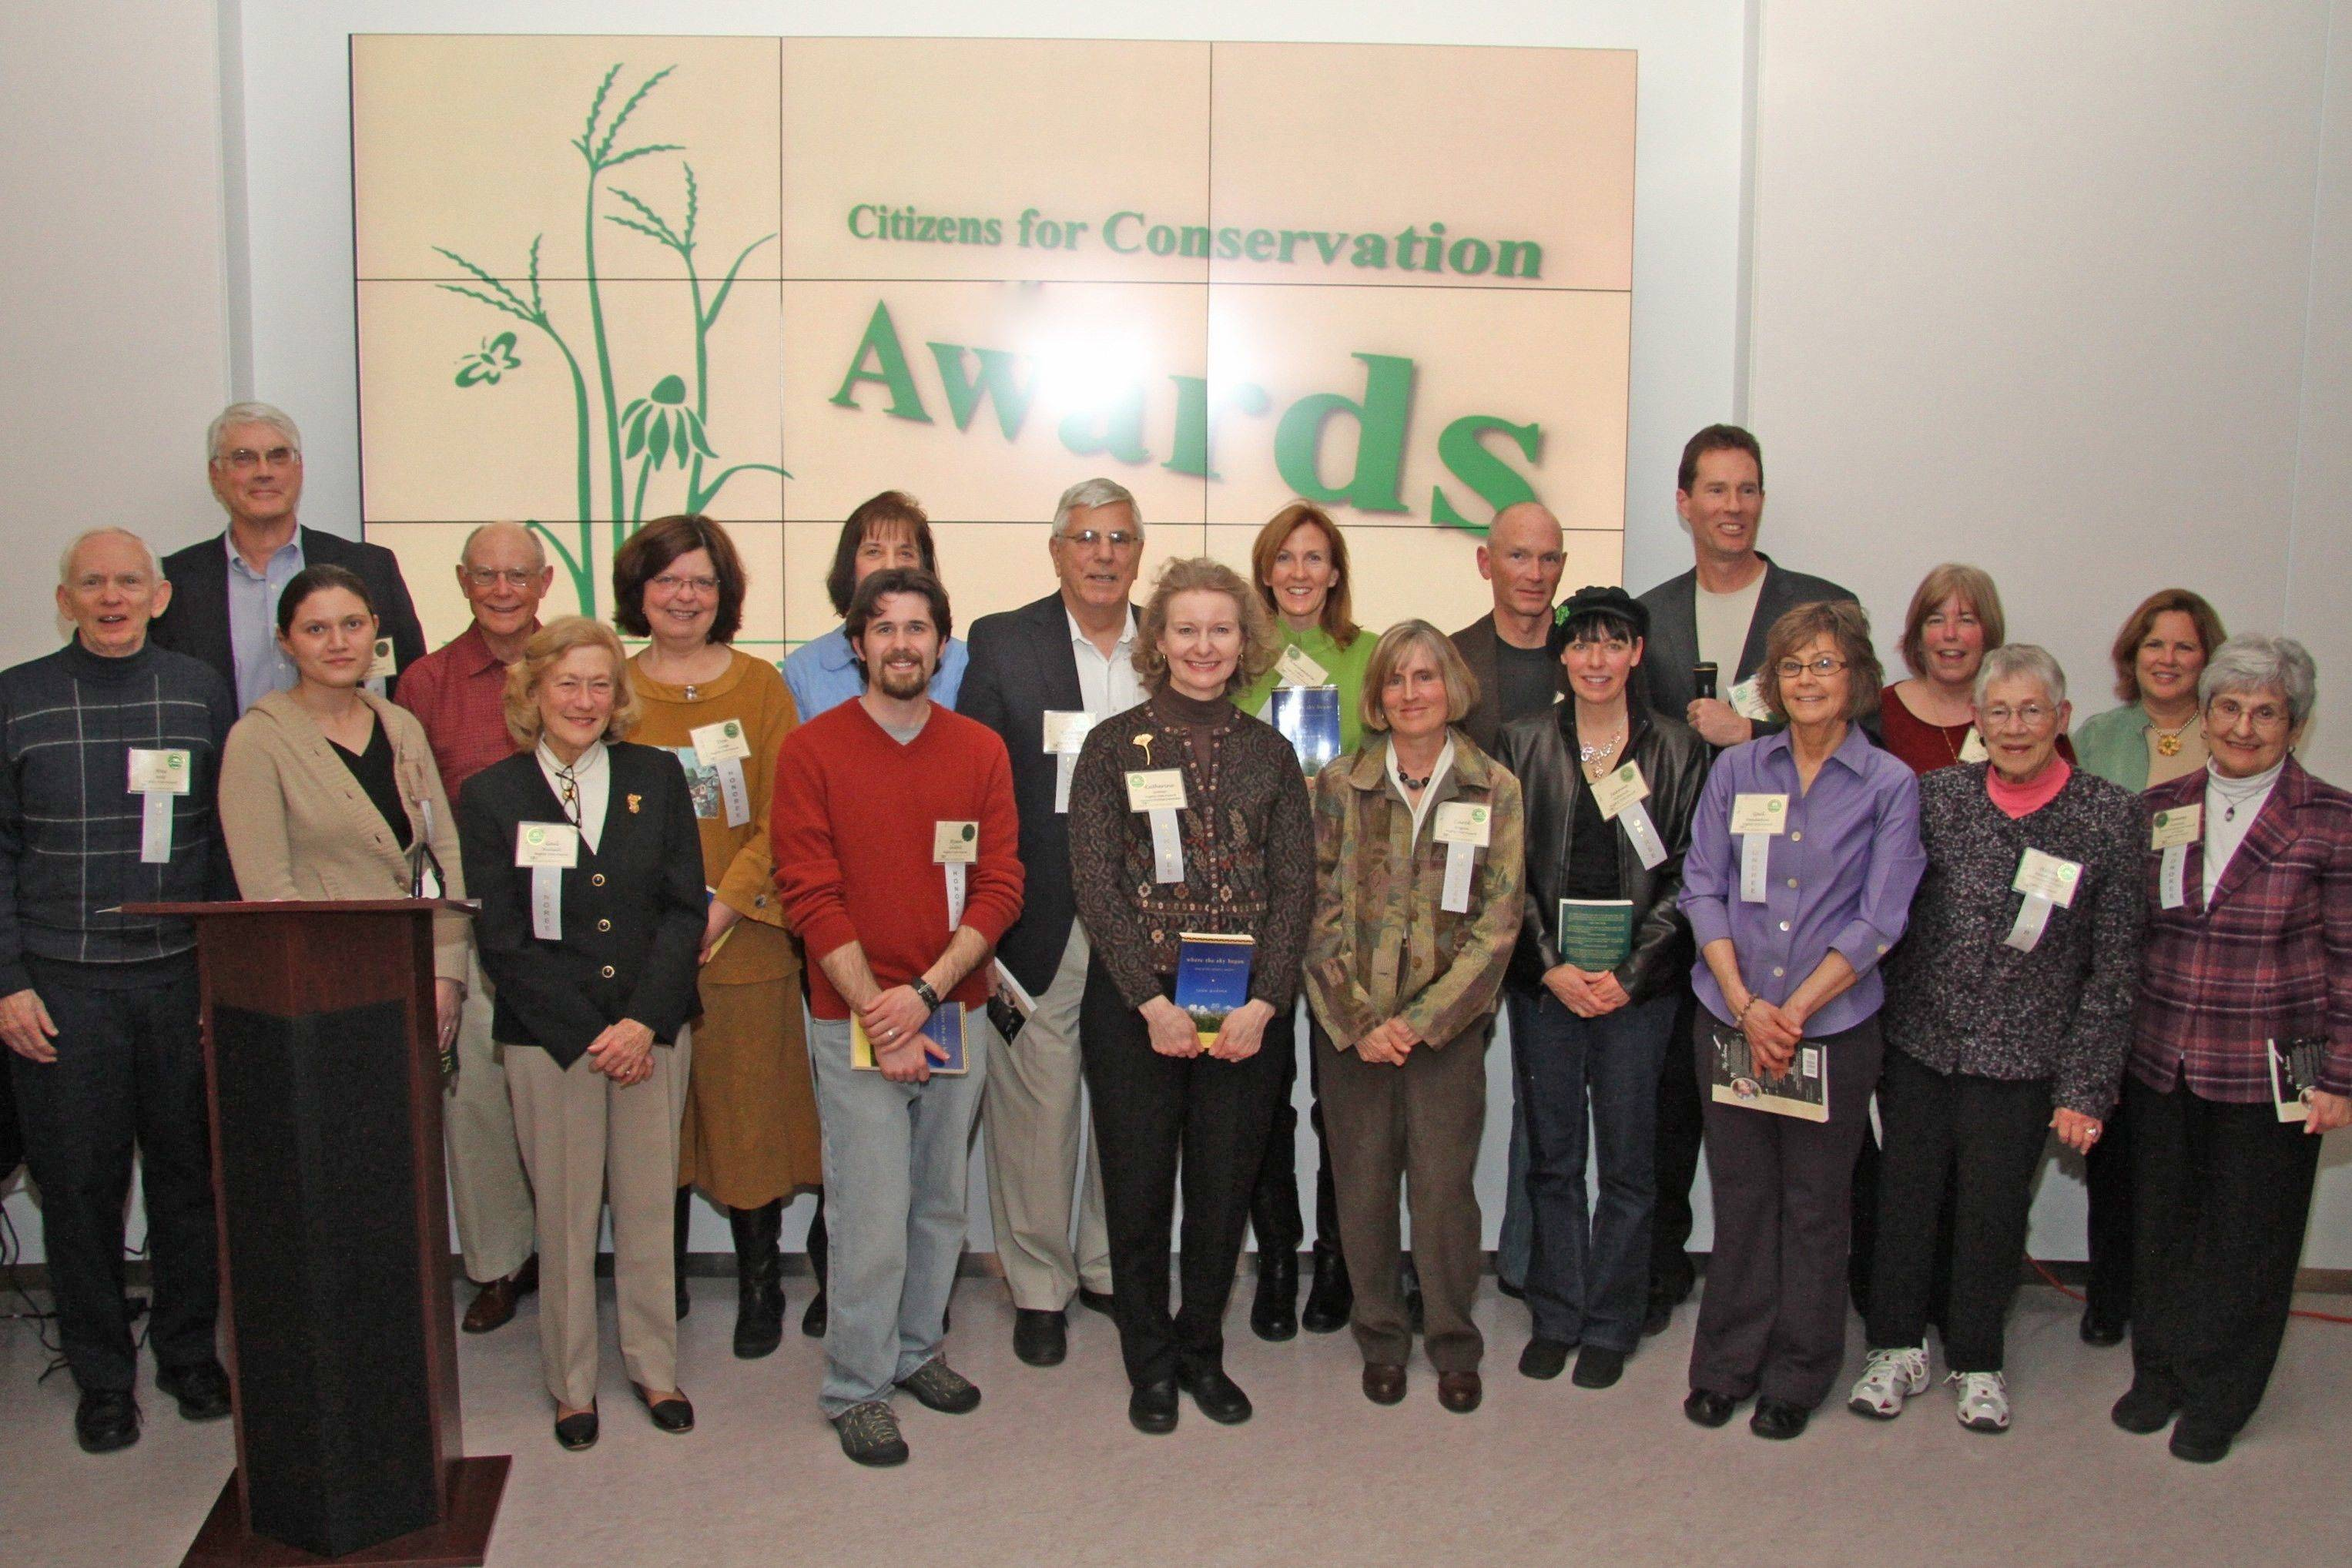 Citizens for Conservation Mighty Oak Award winners at the organizations 40th annual anniversary meeting.